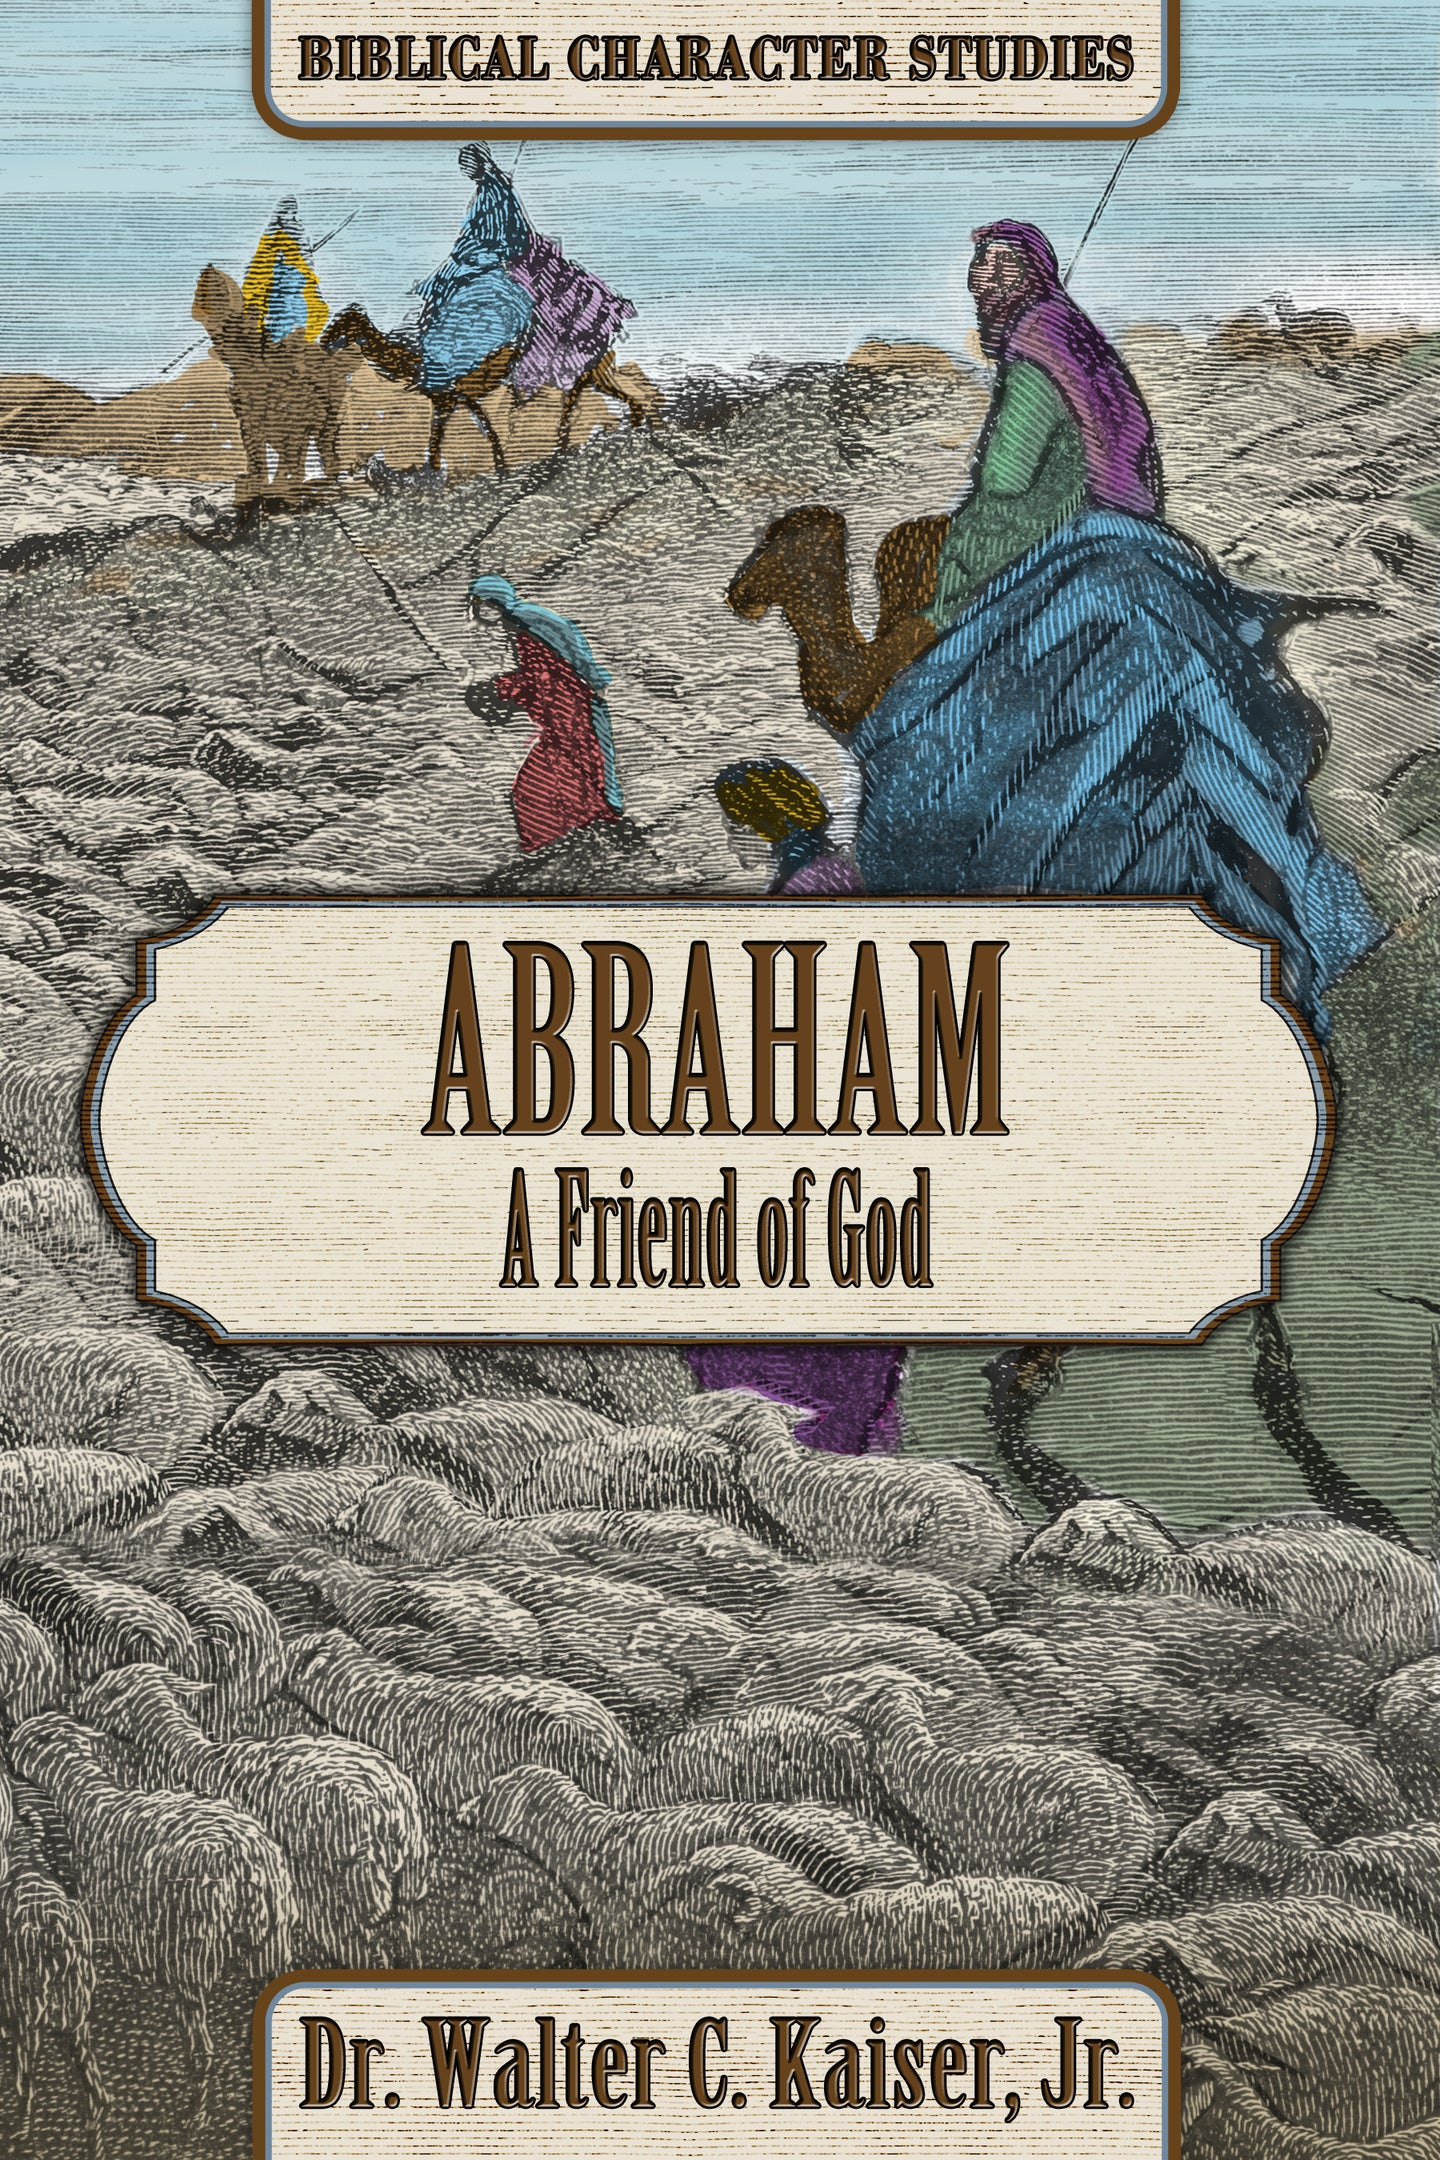 Abraham: A Friend of God by Dr. Walter C. Kaiser, Jr. COMING SOON!